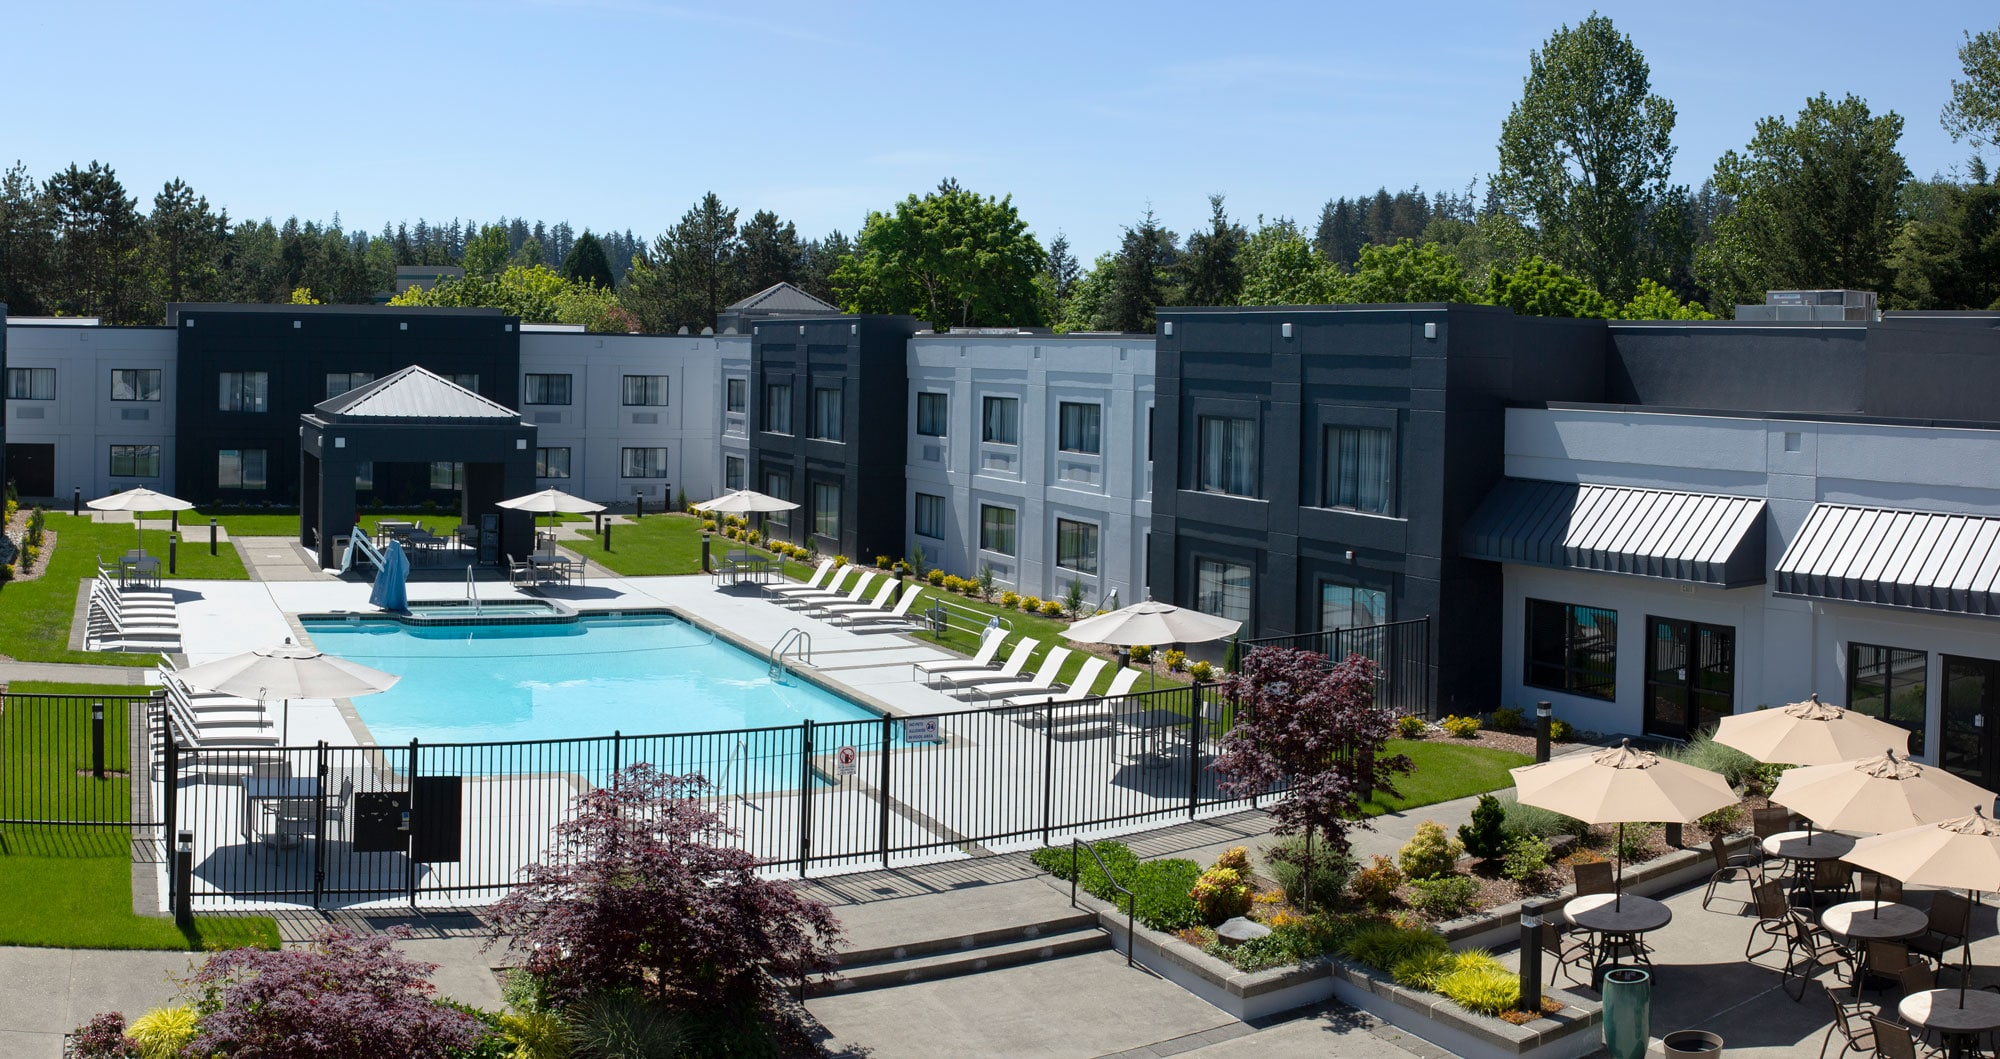 View of the courtyard pool at the Country Inn & Suites by Radisson in Bothell, WA.